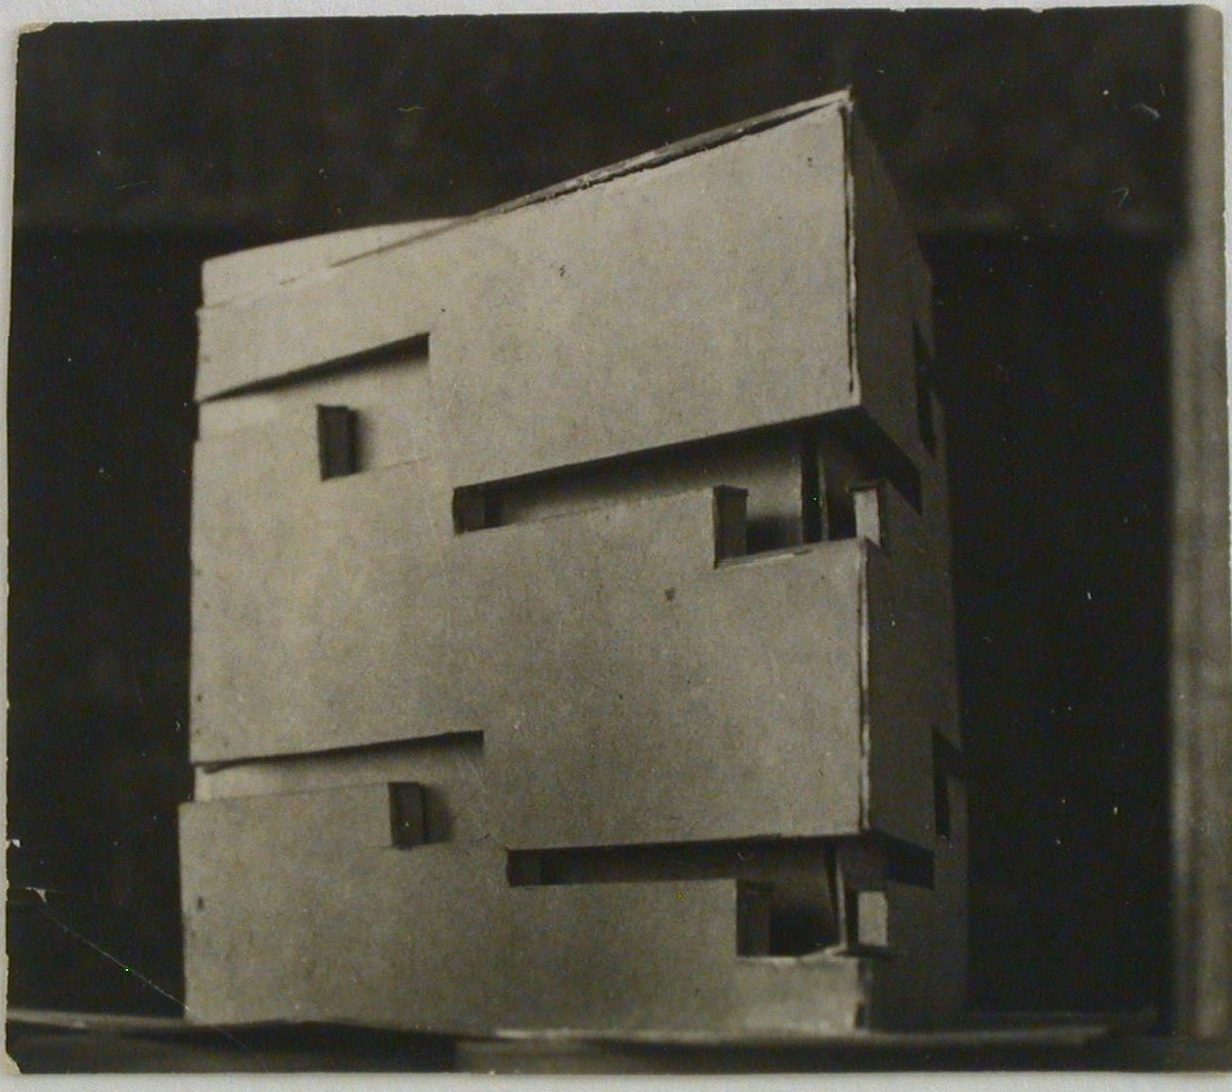 Photograph of a student model on the topic %22Finding the Form of Blunt Massive Volume (Parallelepiped, Cylinder, Complex Configuration)%22 for the %22Space%22 course at the Vkhutemas (Higher State Artistic Technical Studios), Moscow between 1920-1926k